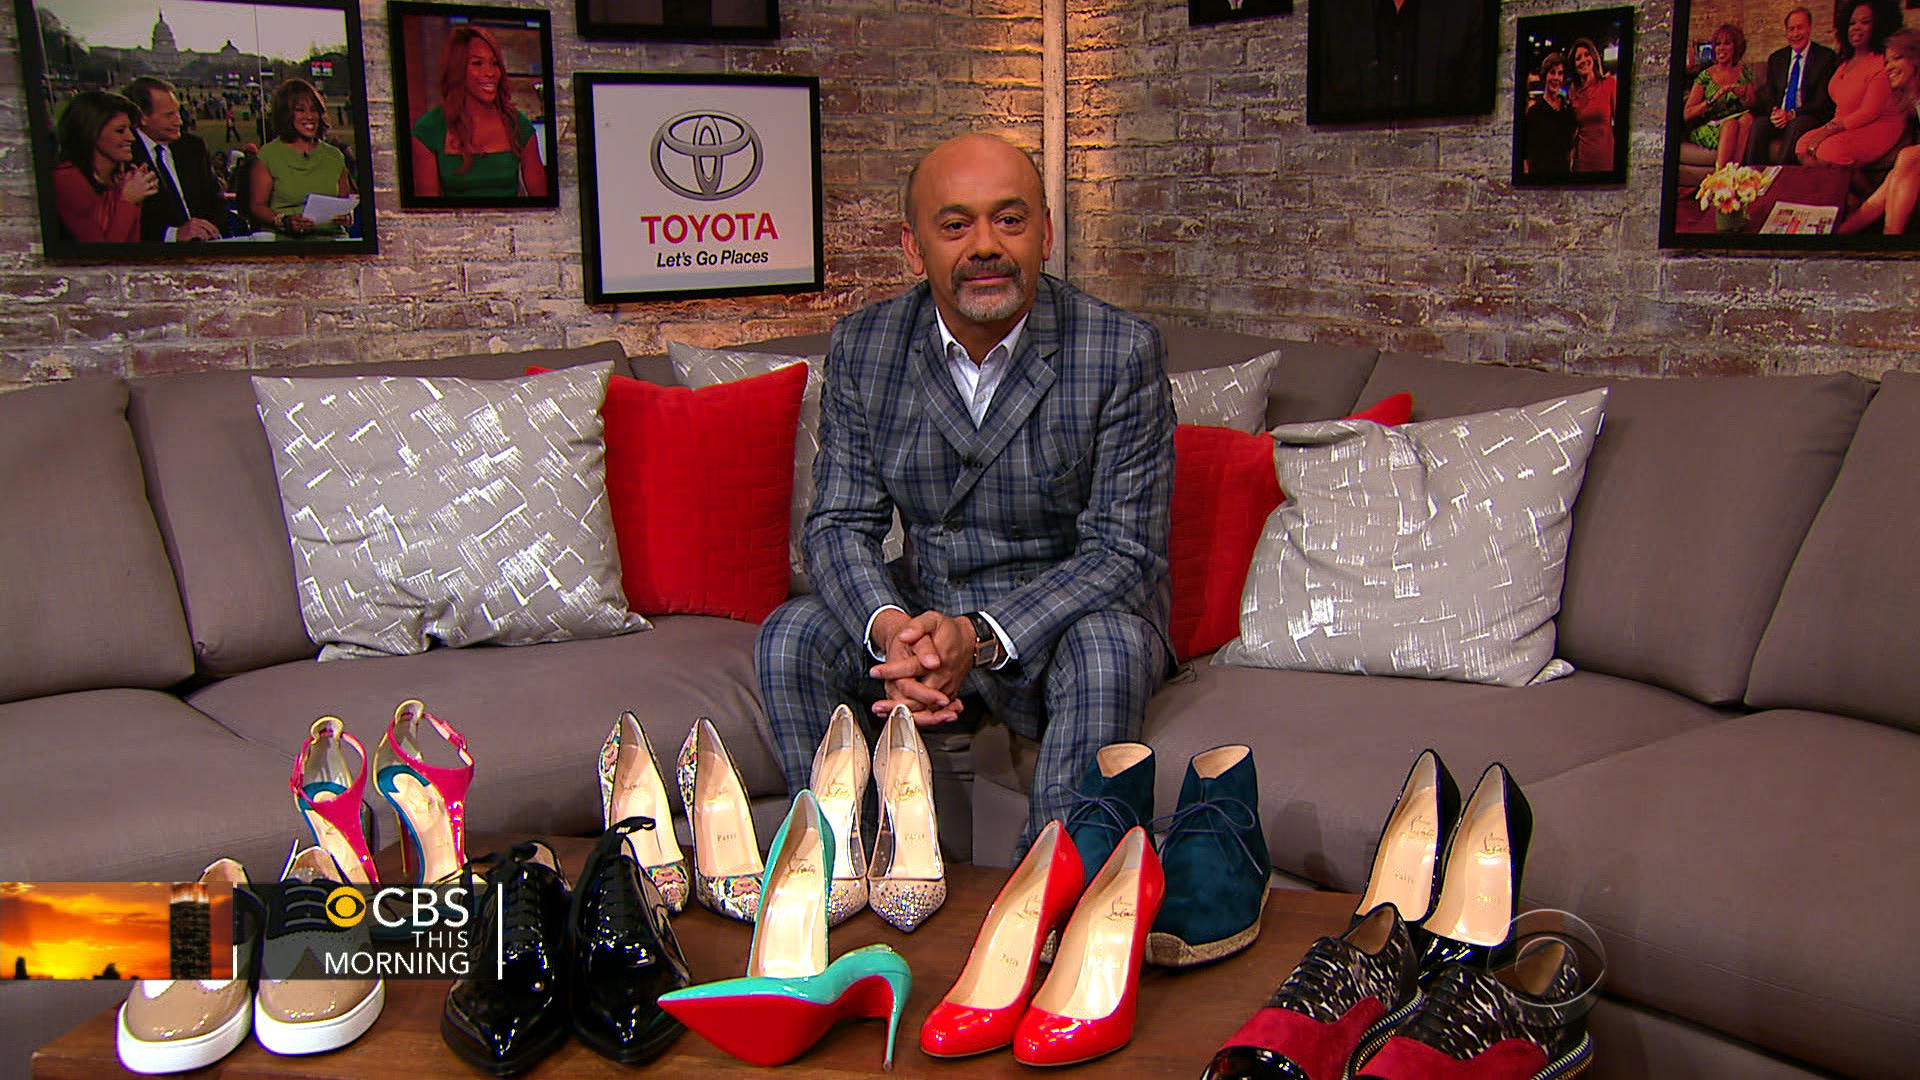 ctm 1121 LOUBOUTIN Christian Louboutin: I Dont Want My Shoes To Look Comfy